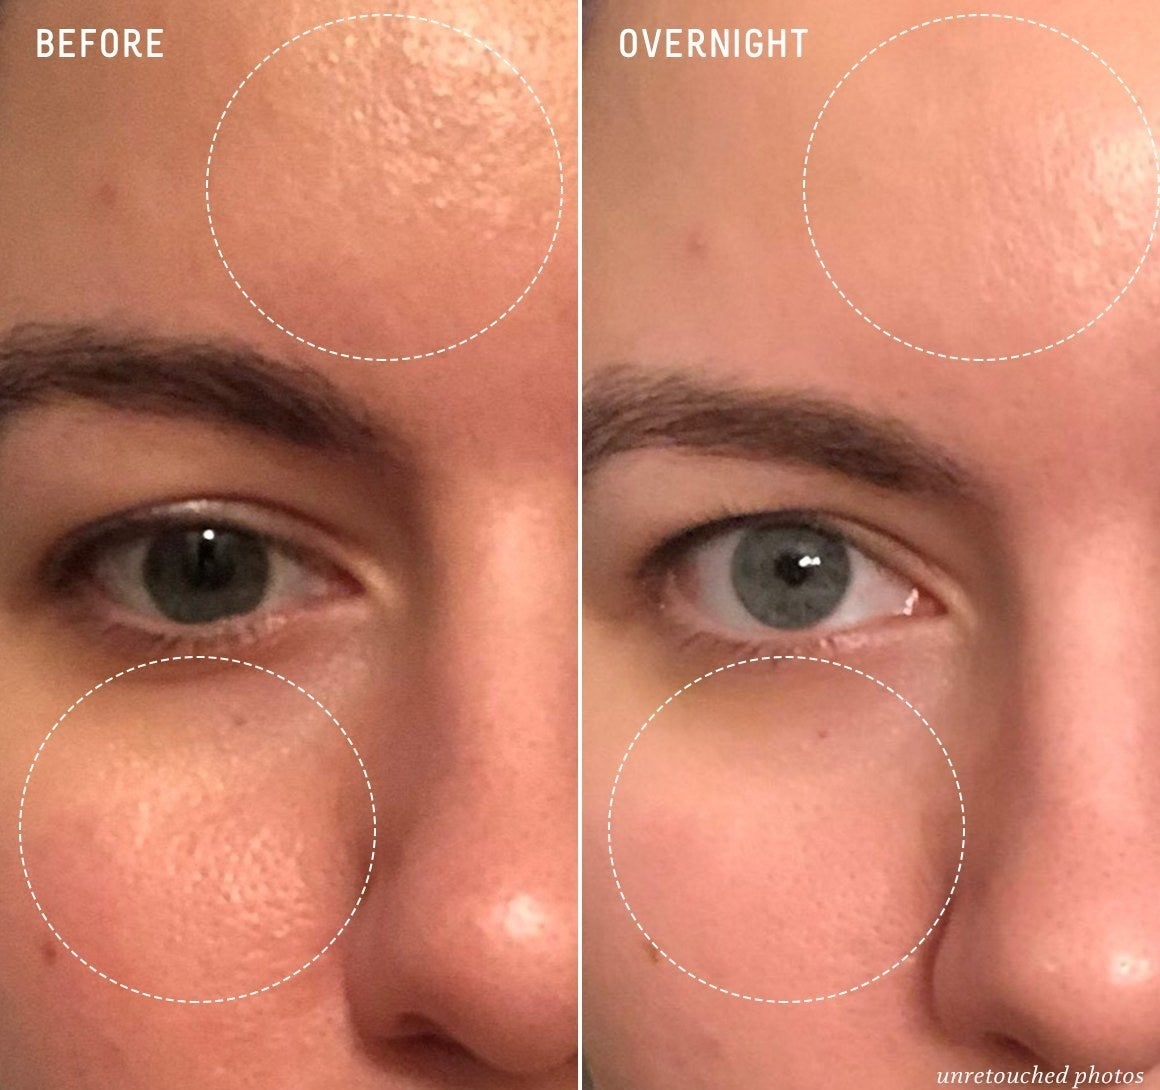 user before and after showing textured skin and open pores, then smooth poreless skin after using product